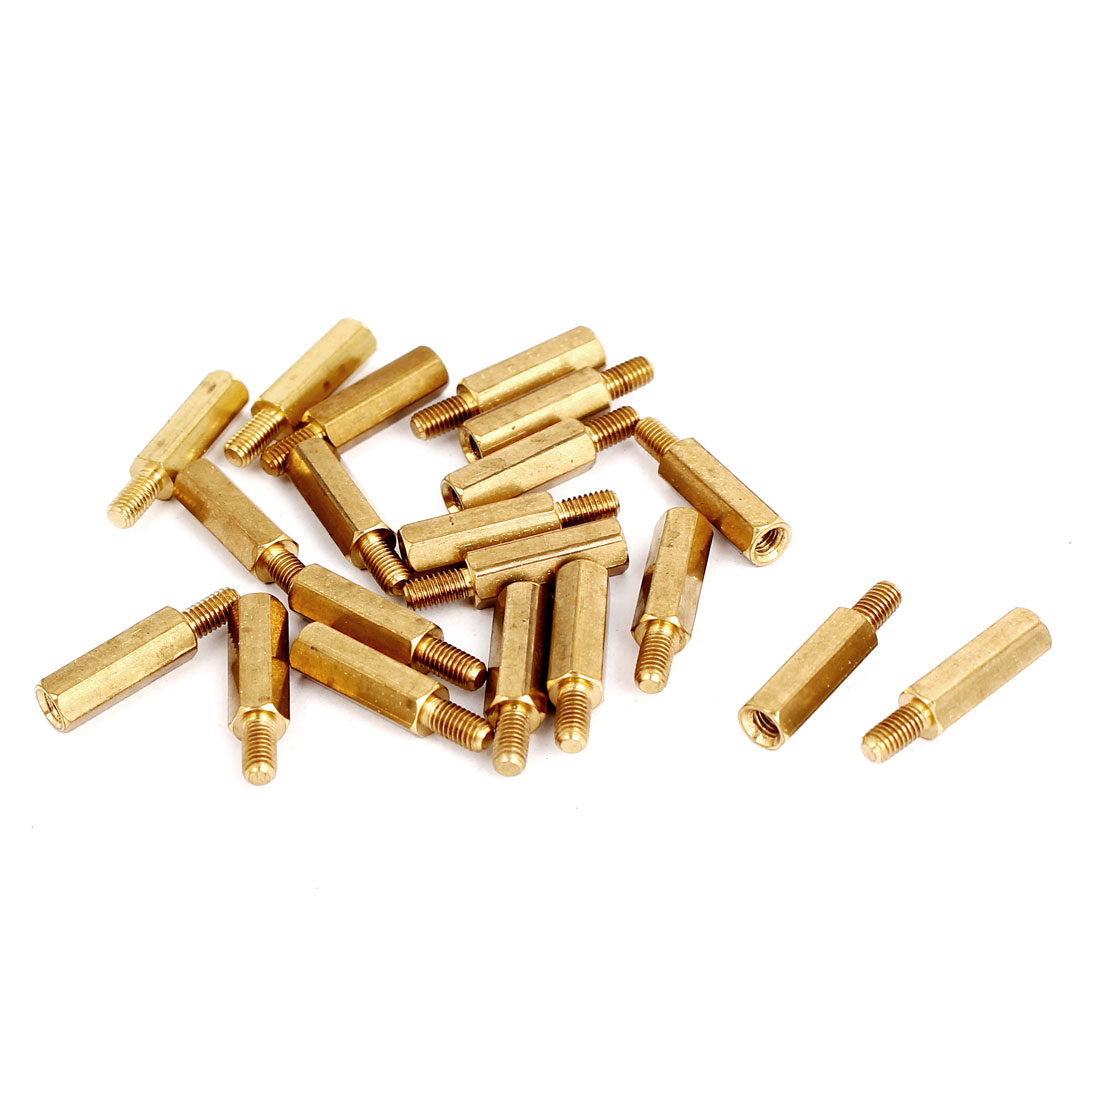 M3 Male/Female Thread Brass Hex Hexagonal PCB Spacer Standoff Support 14mm+6mm 20pcs